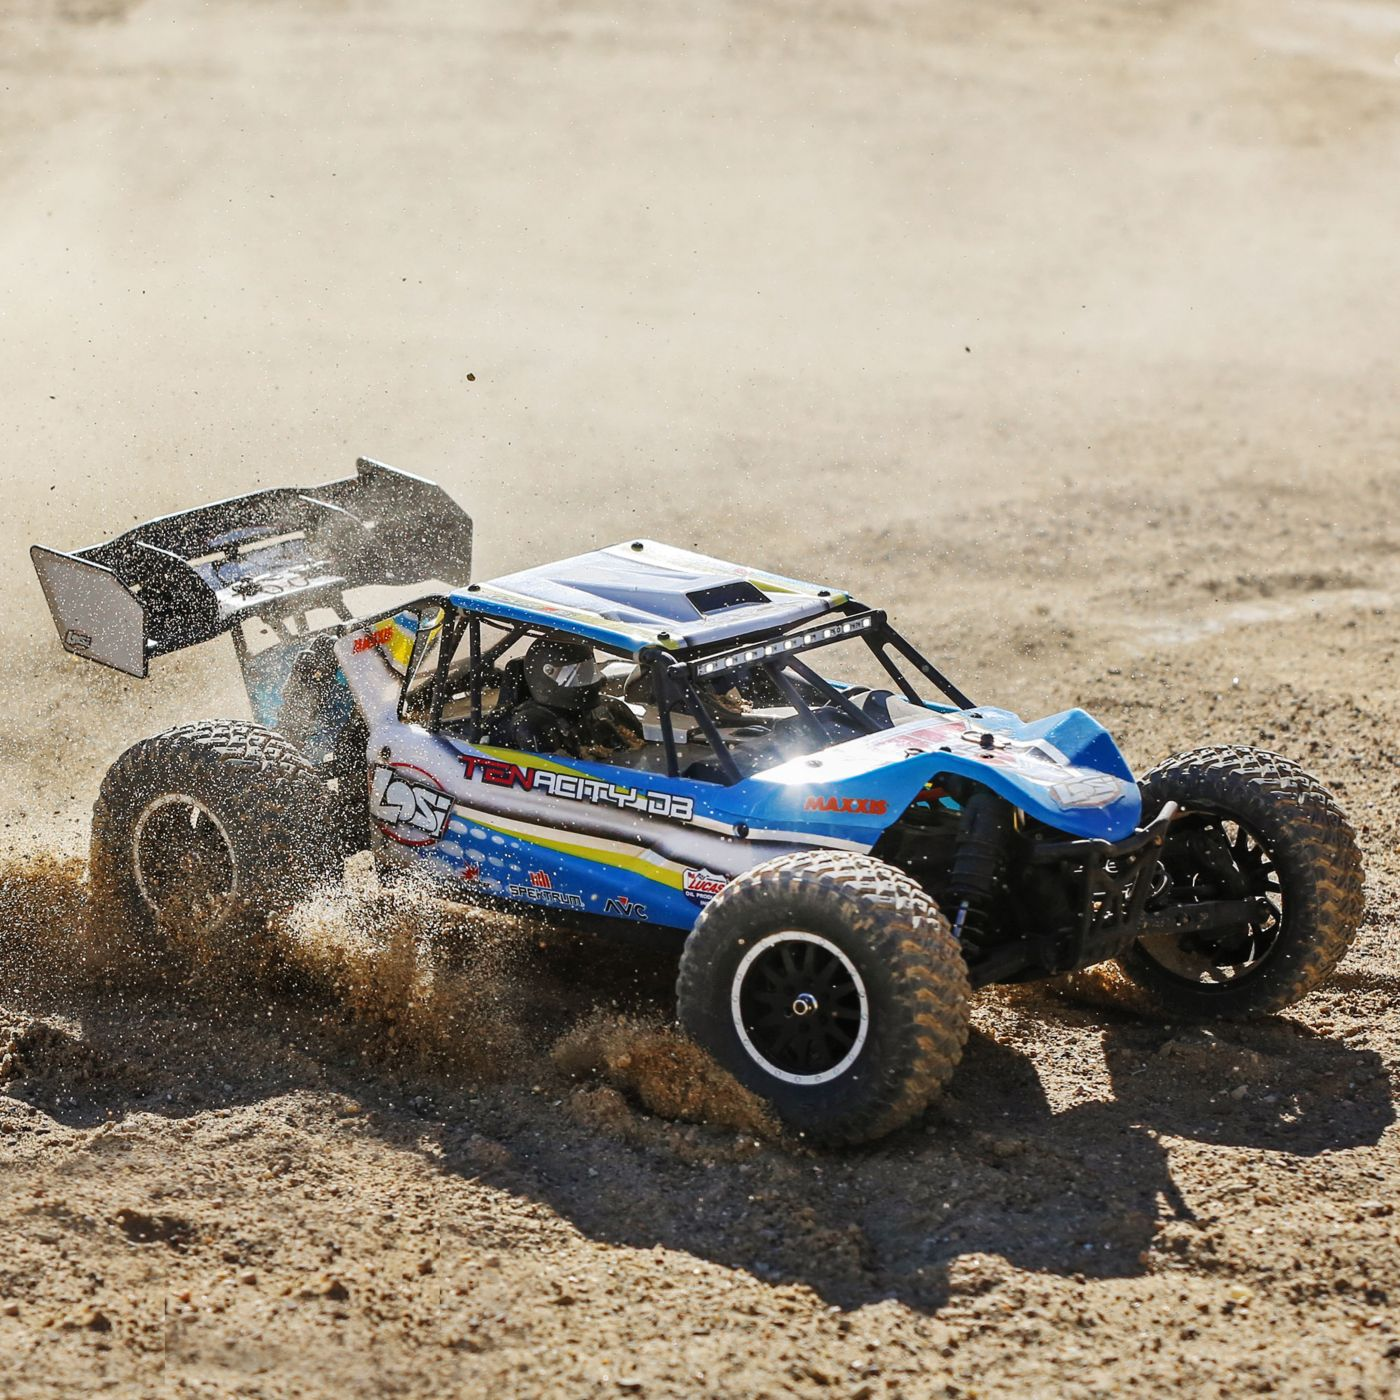 Losi Tenacity 4wd buggy rtr brushless rtr blue 11